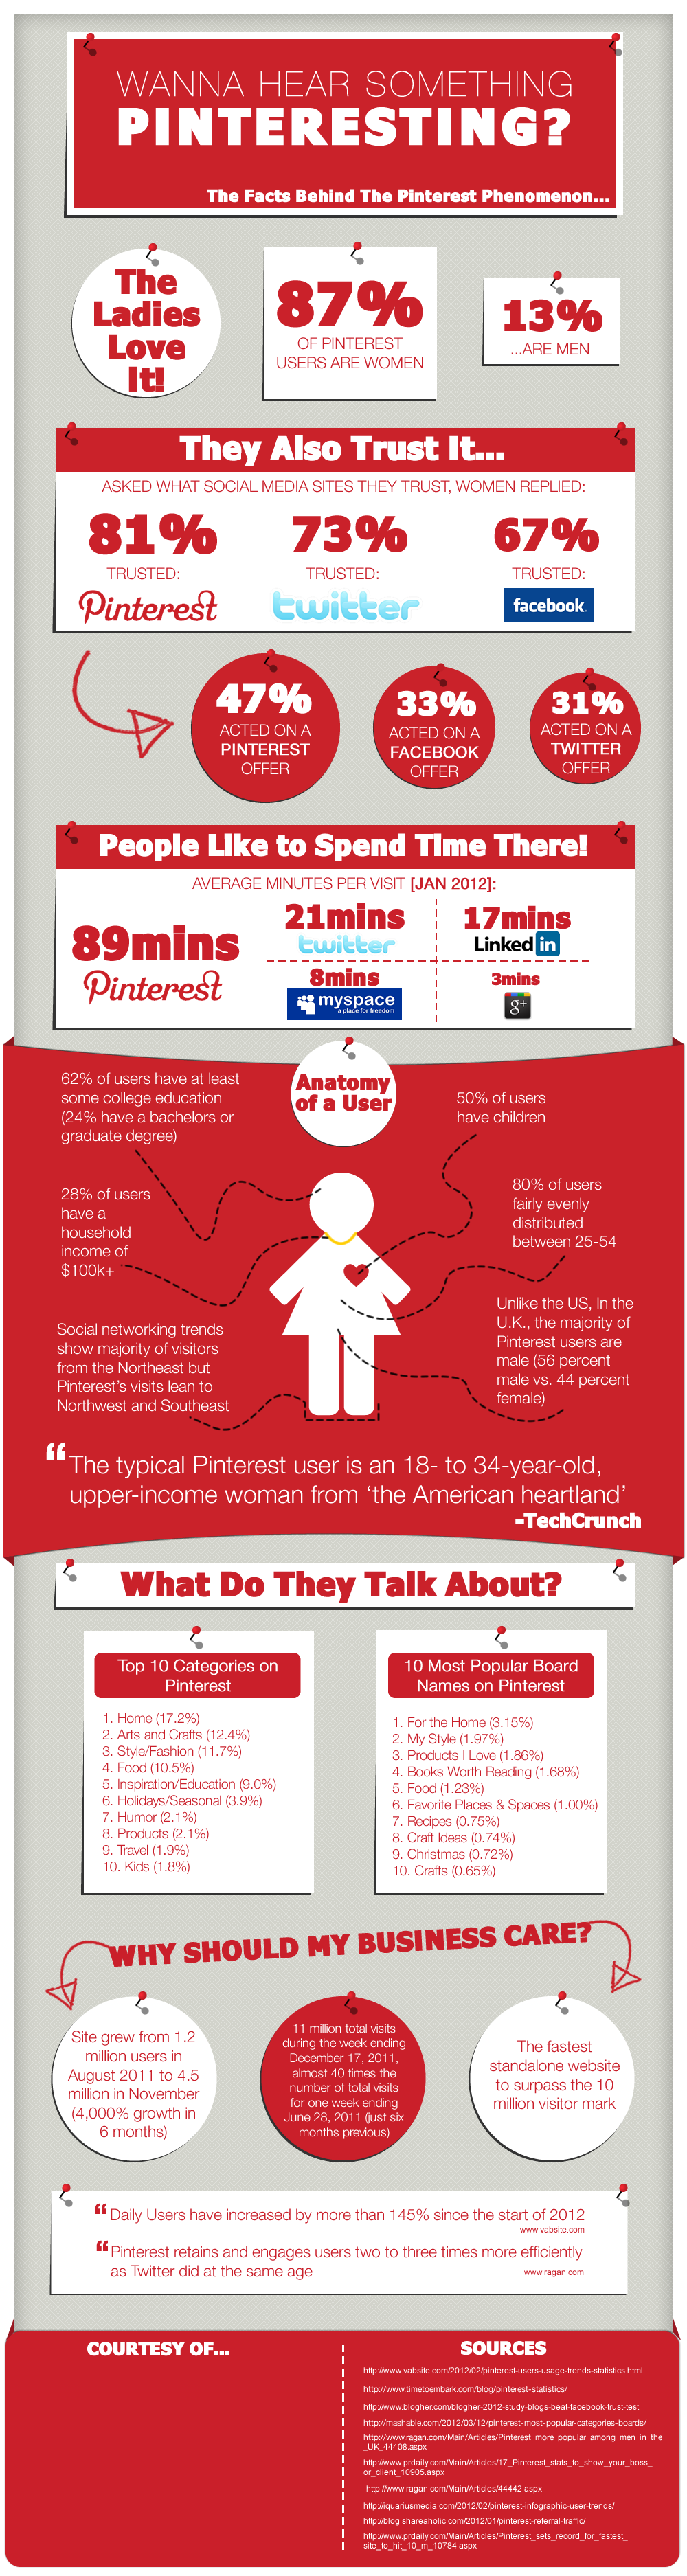 Infographic on Pinterest, who is using it and why